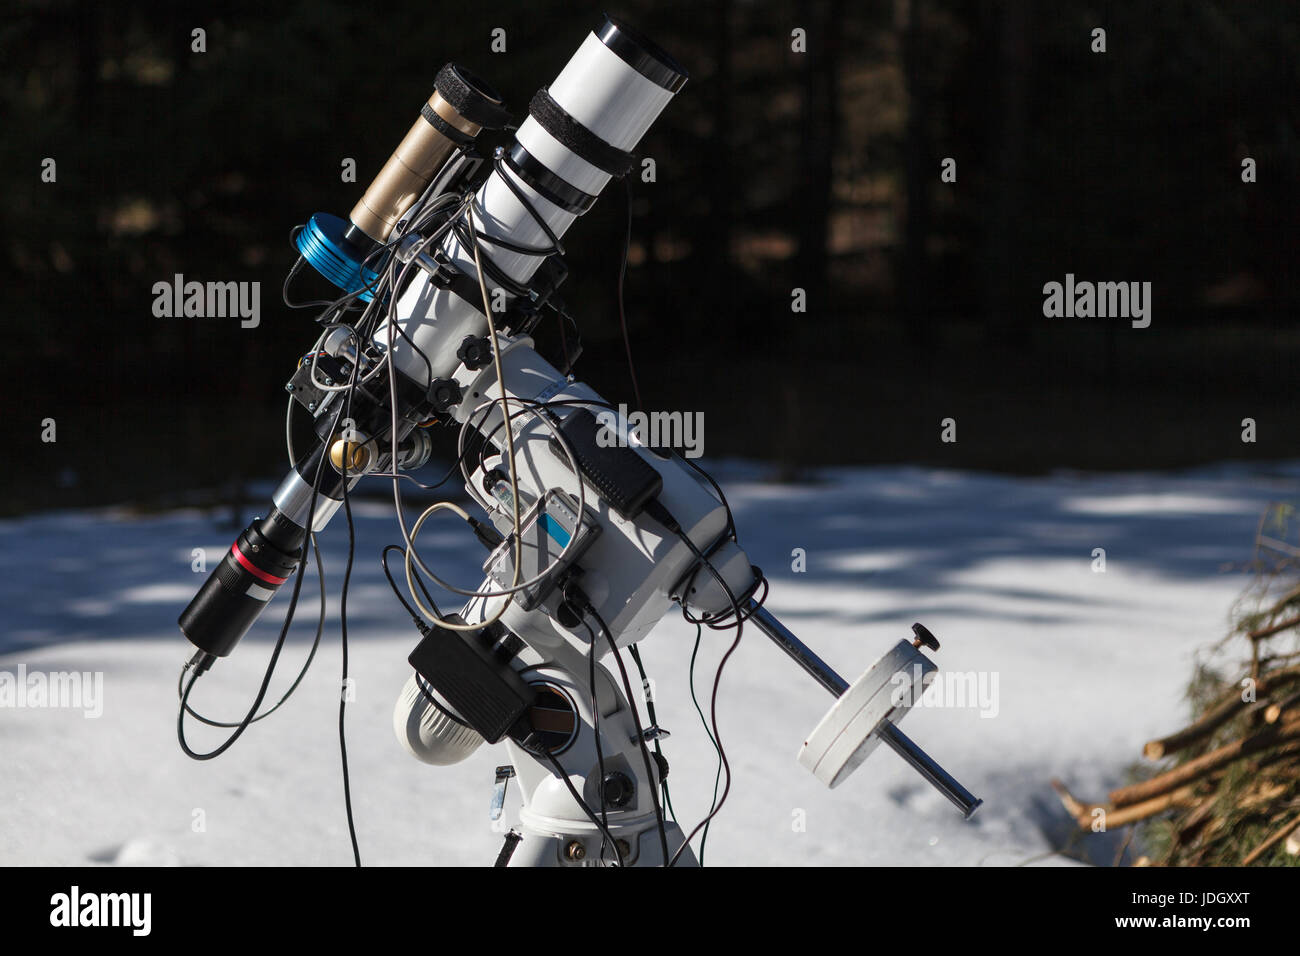 Refractor Stock Photos & Refractor Stock Images - Alamy